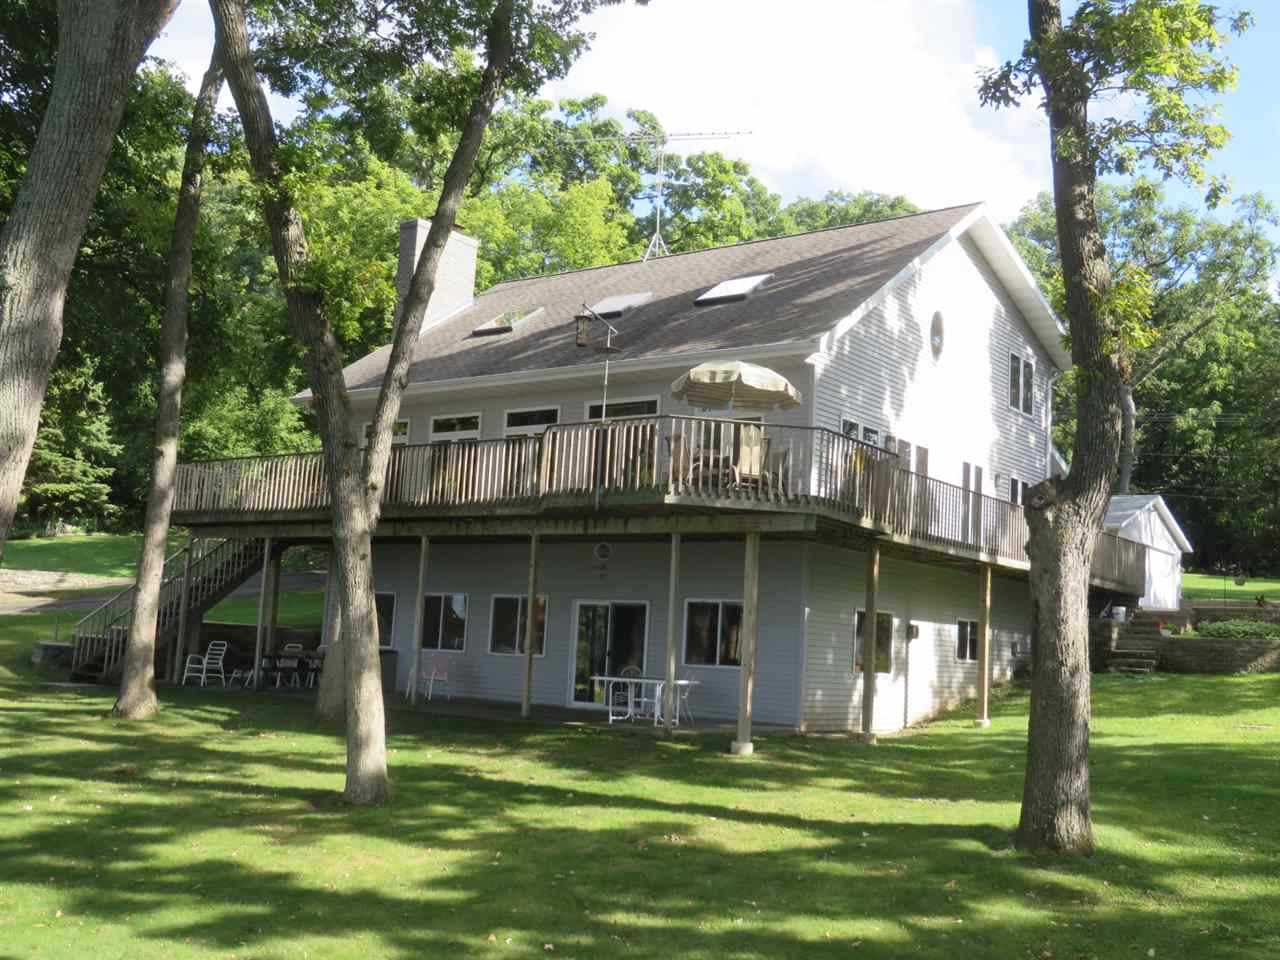 W1056 SPRING GROVE RD, Green Lake, WI 54941